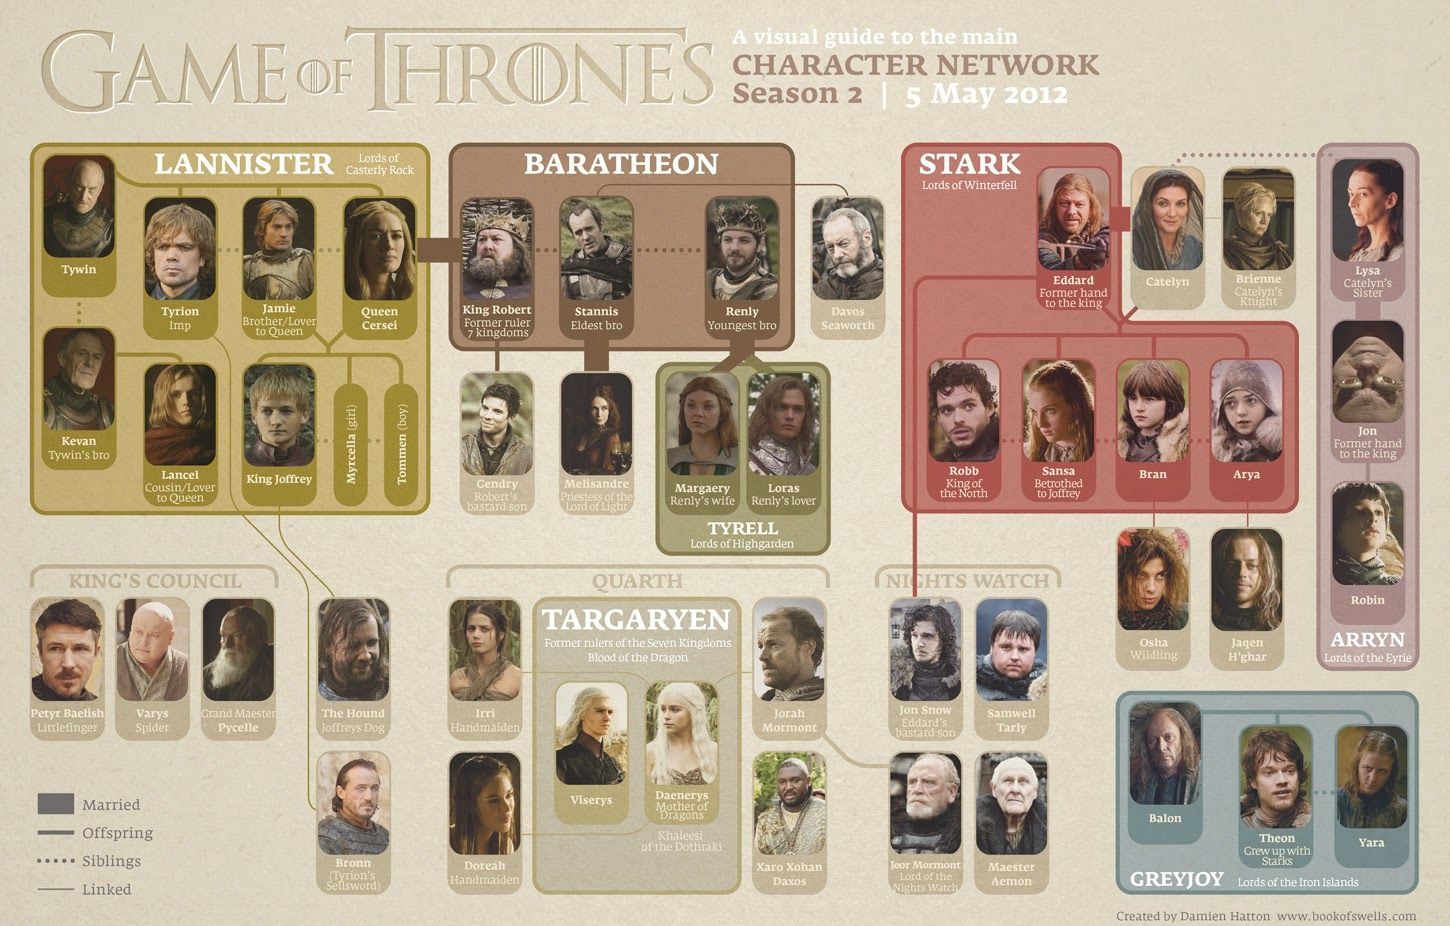 game of thrones character names you want big click this image rh pinterest com game of thrones character guide book game of thrones character guide printable